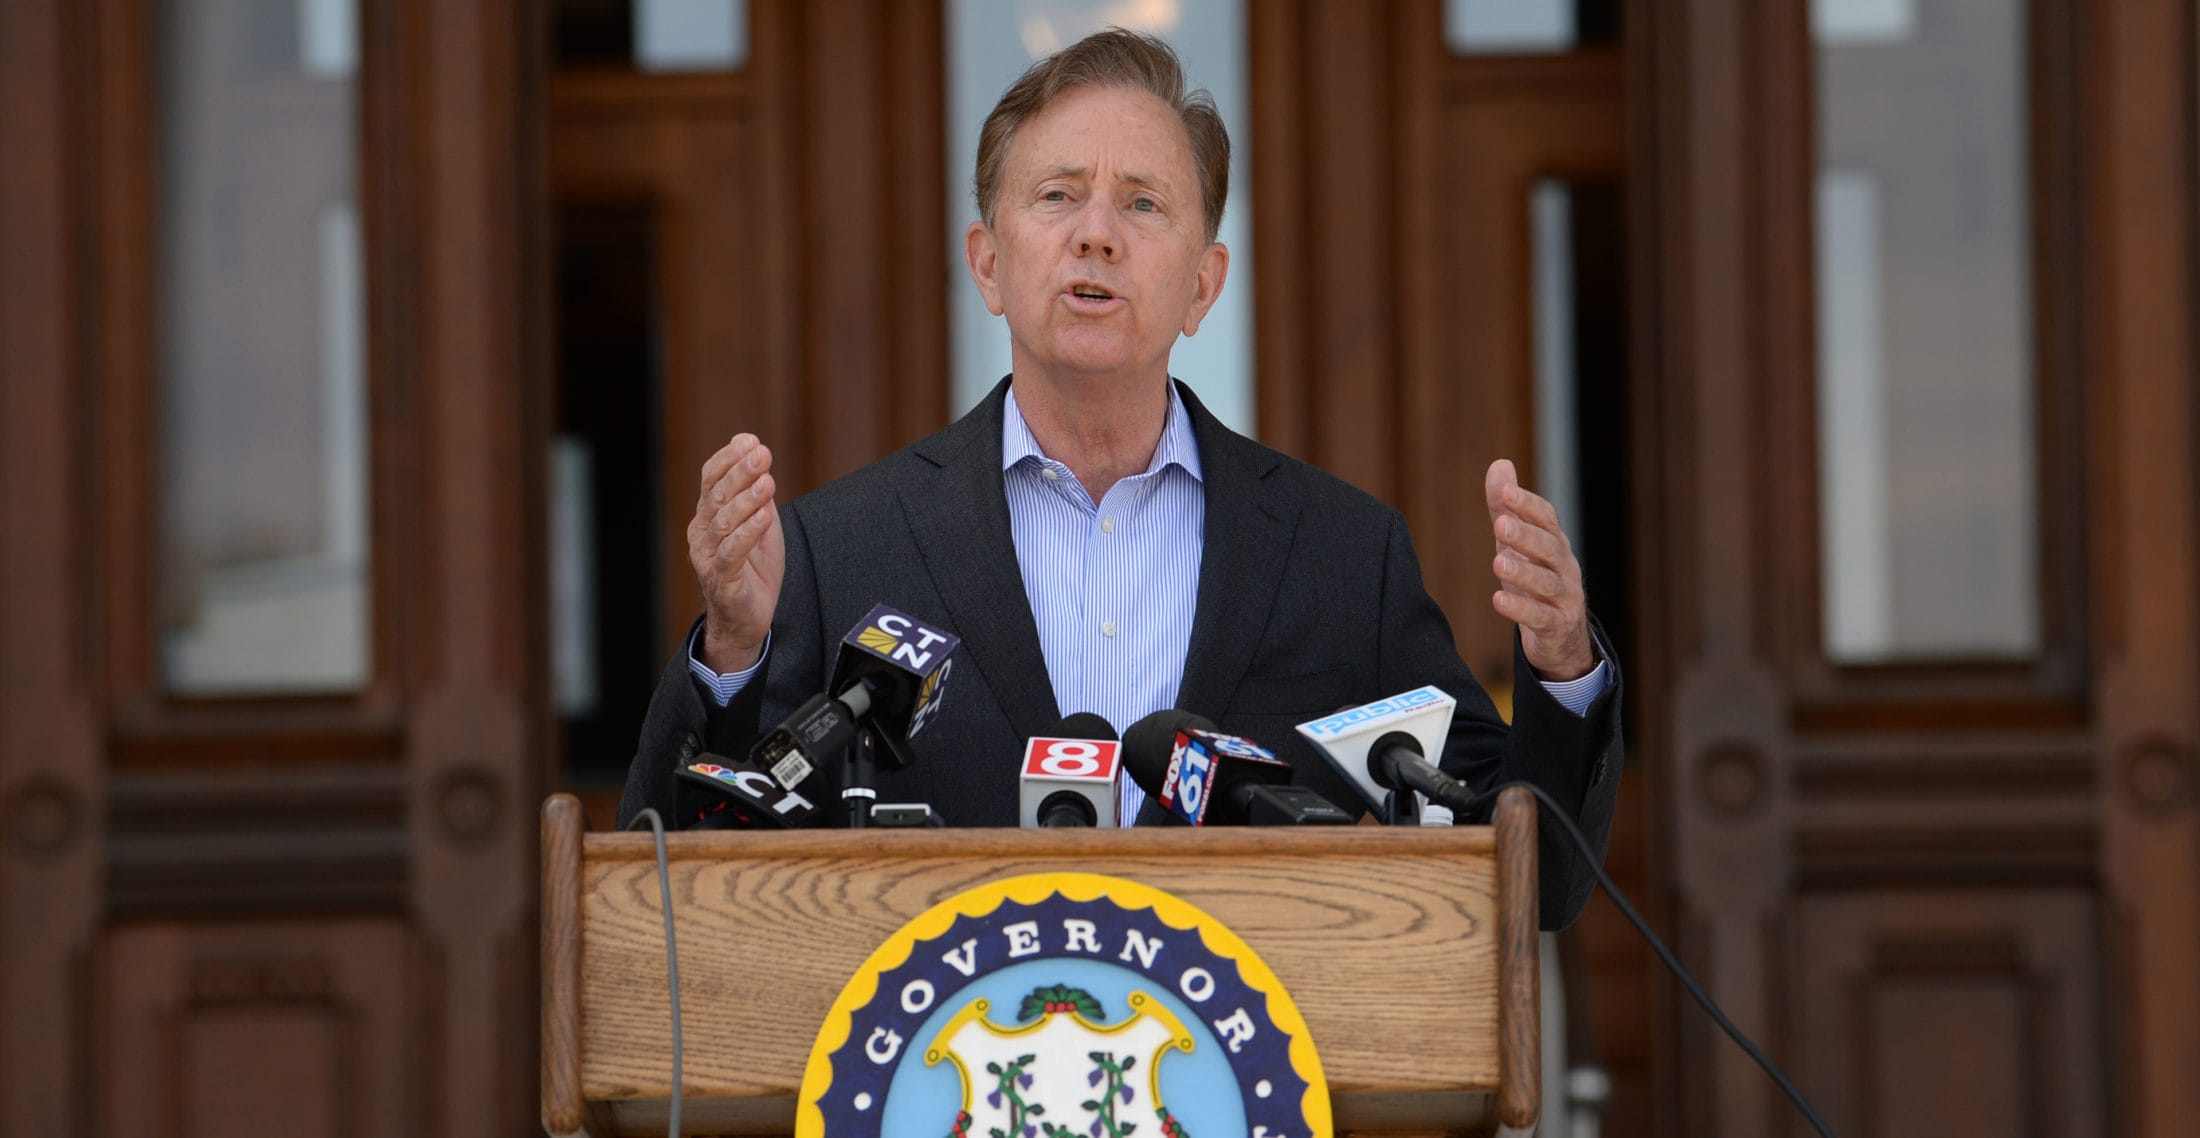 Legislative leaders support extension of Lamont's emergency powers during COVID